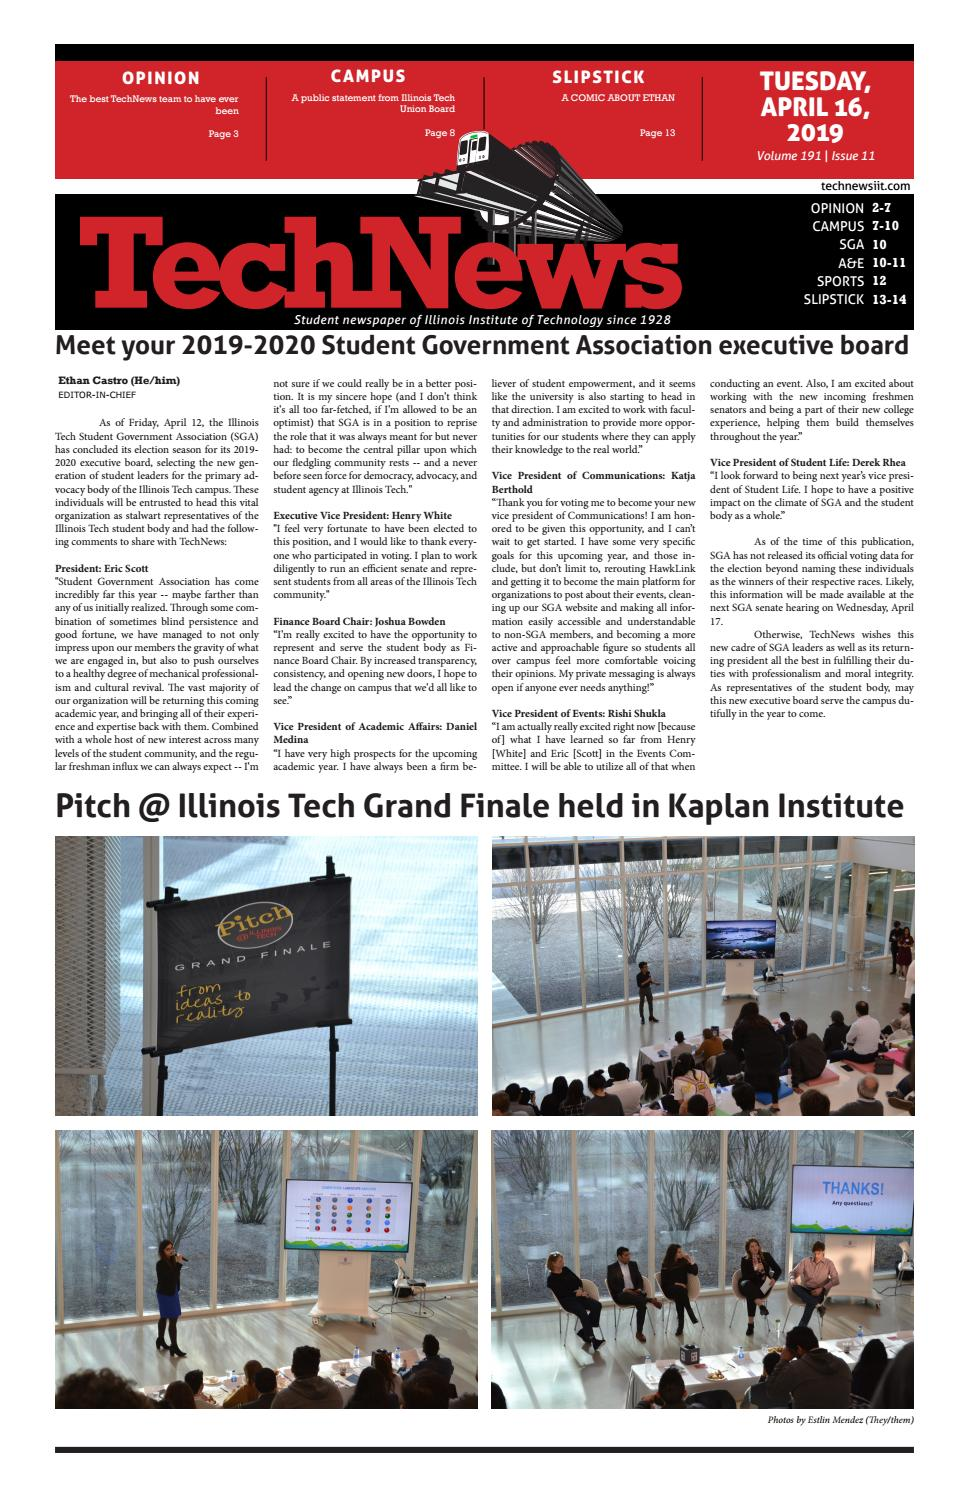 Volume 191 Issue 11 by TechNews - issuu